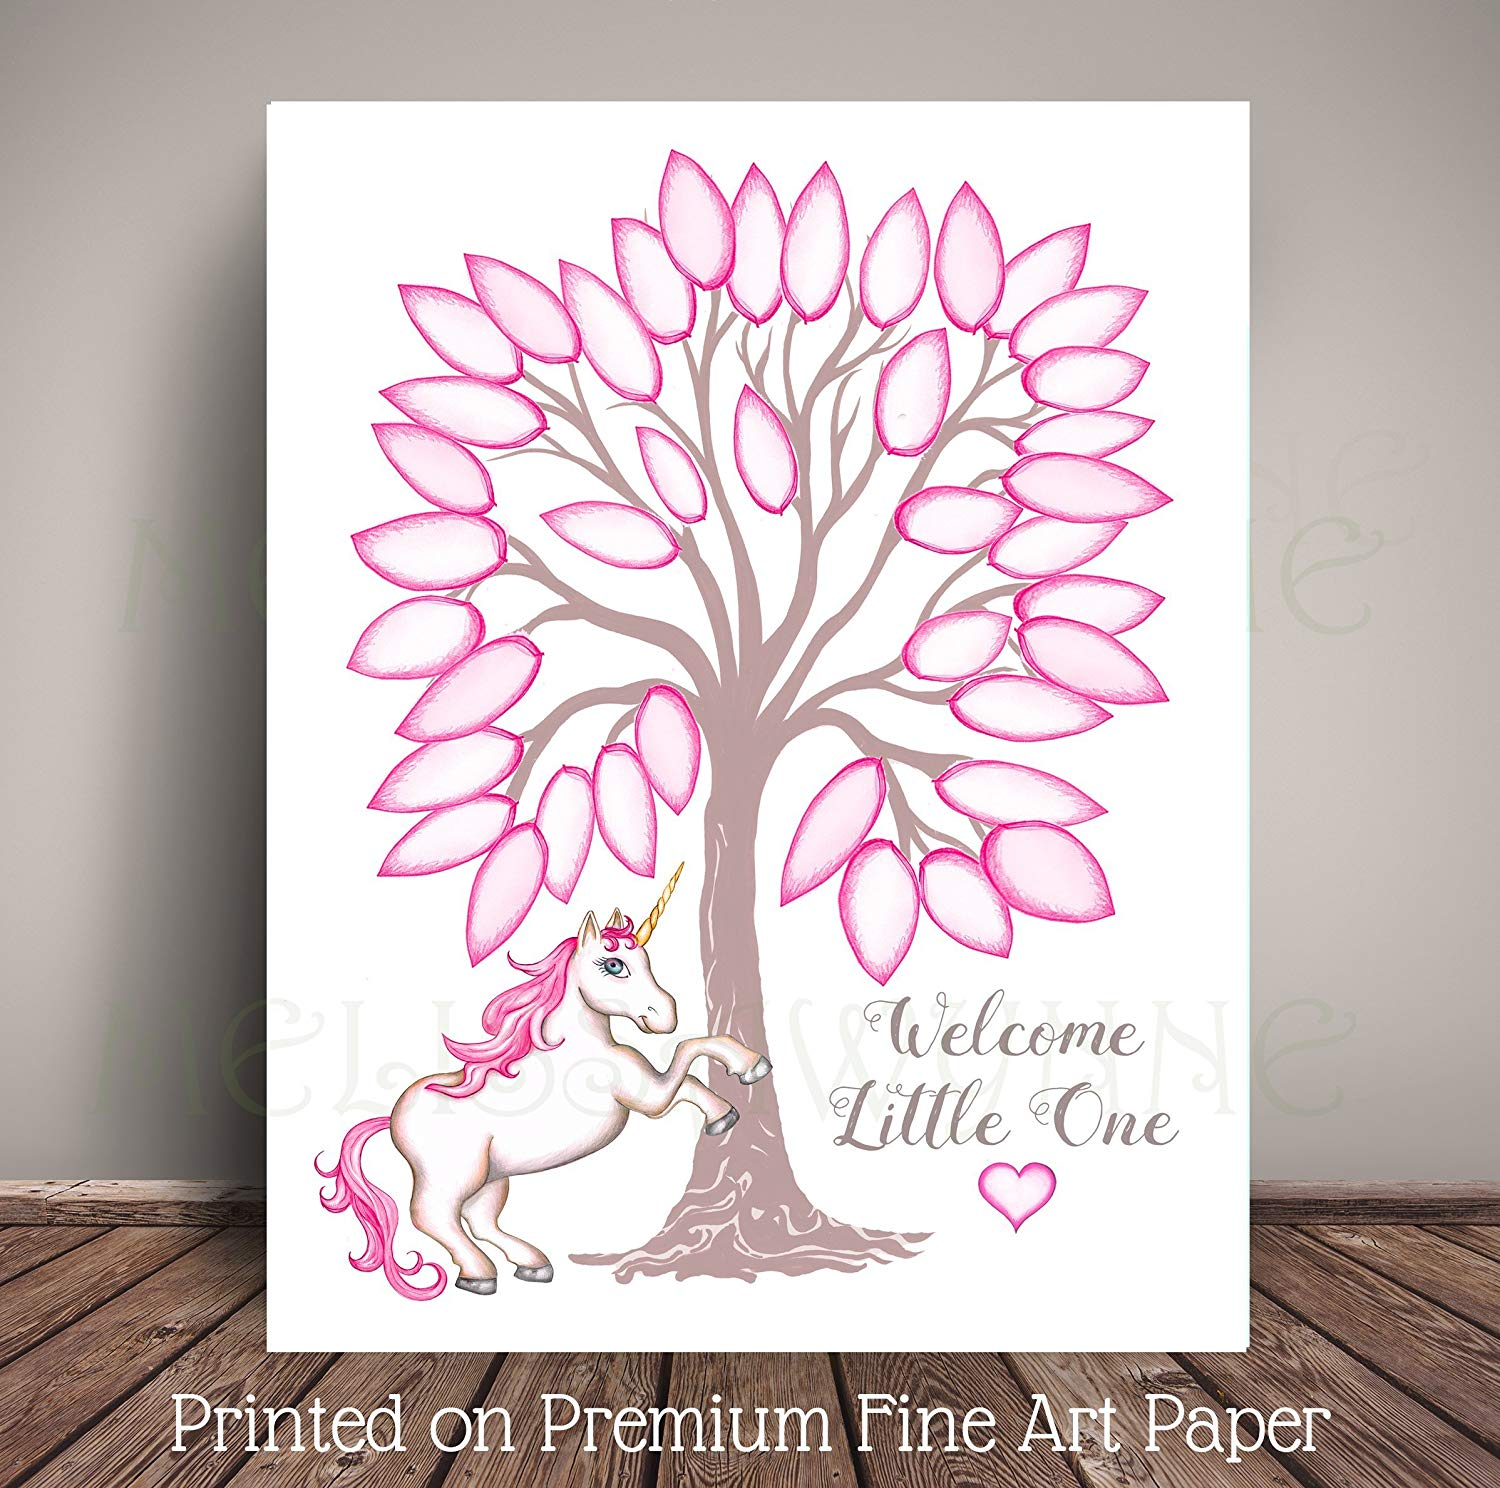 "Unicorn Nursery Art for Unicorn Baby Shower or Birthday""Guest Book"" Alternative, Tree Leaf Sign-in - Printed on Premium Fine Art Paper"